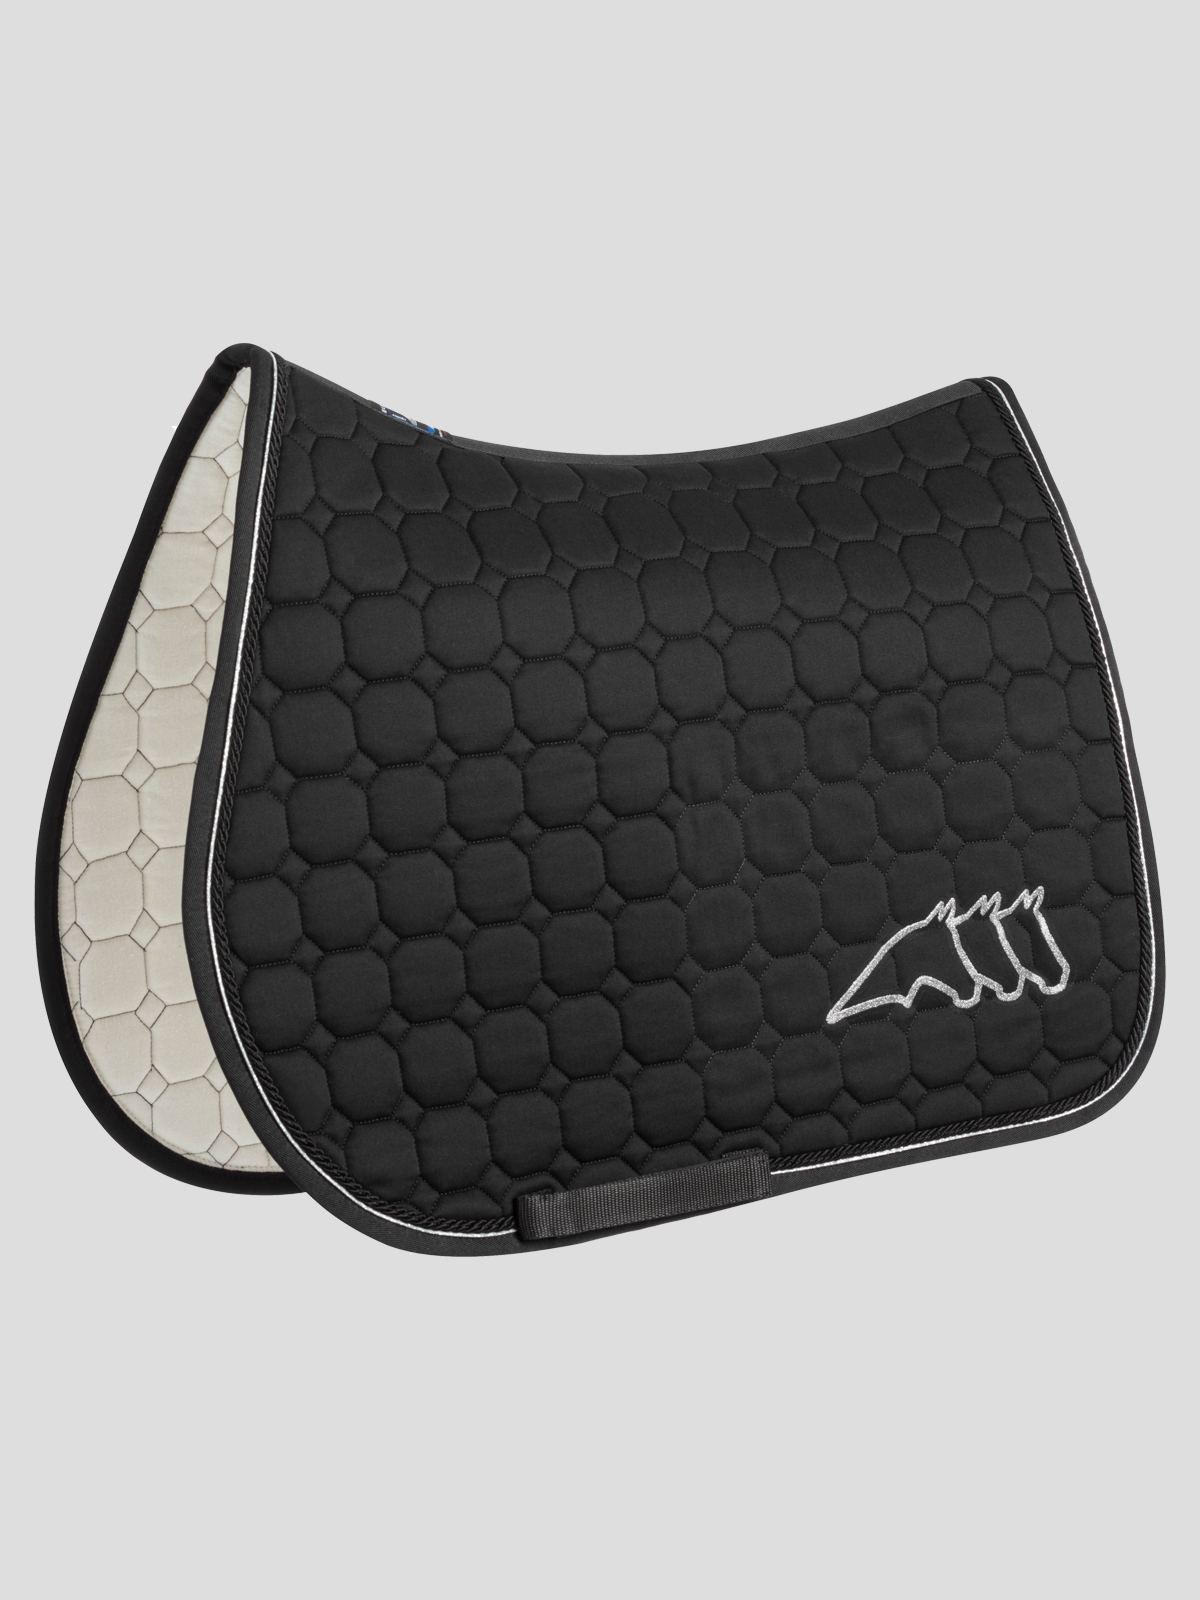 Galakg OCTAGON QUILTED SADDLE PAD 1